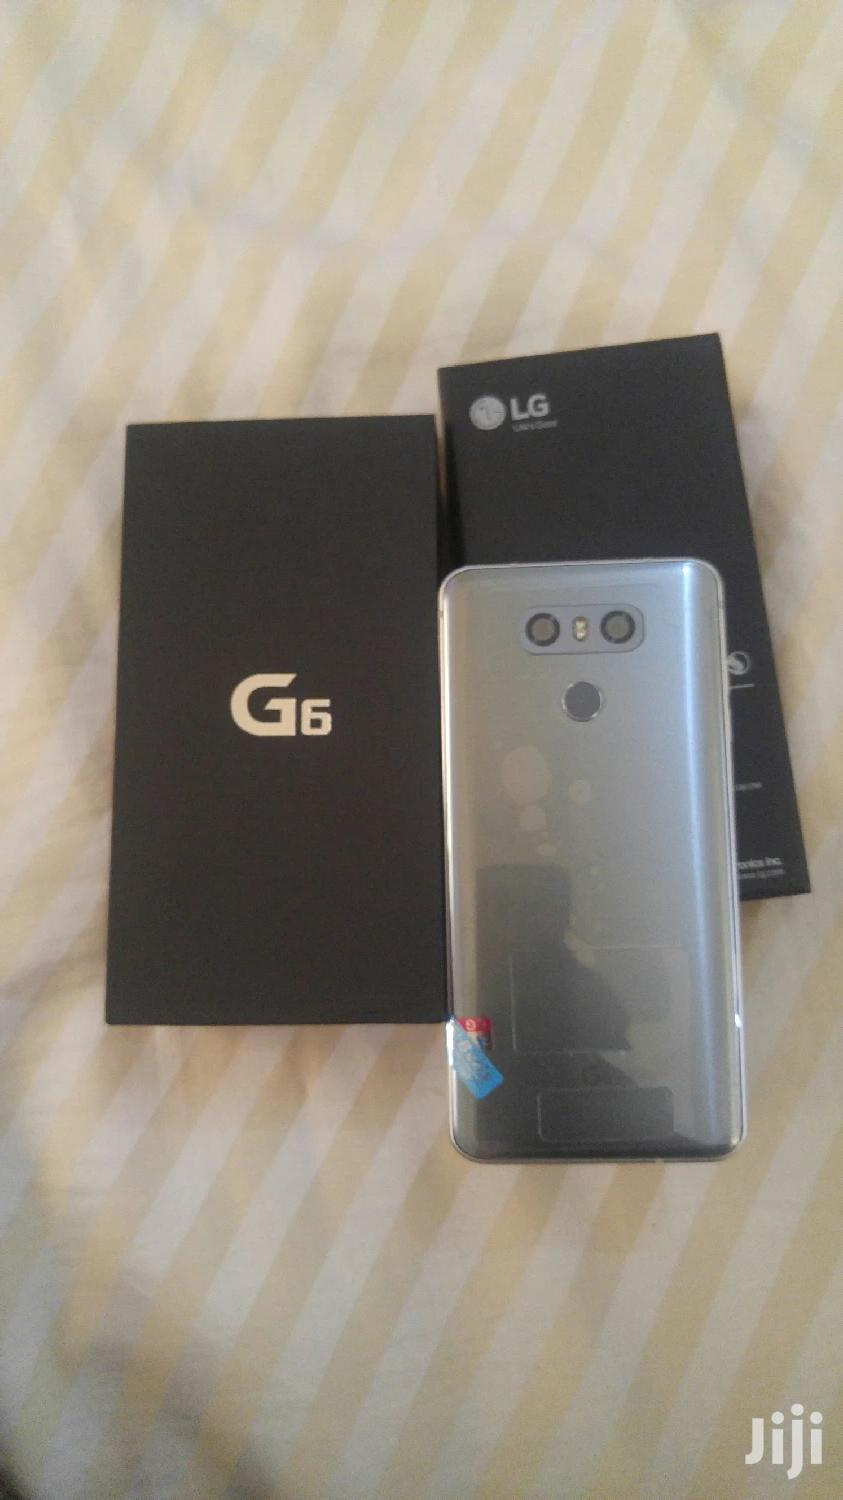 Archive: New LG G6 64 GB Silver